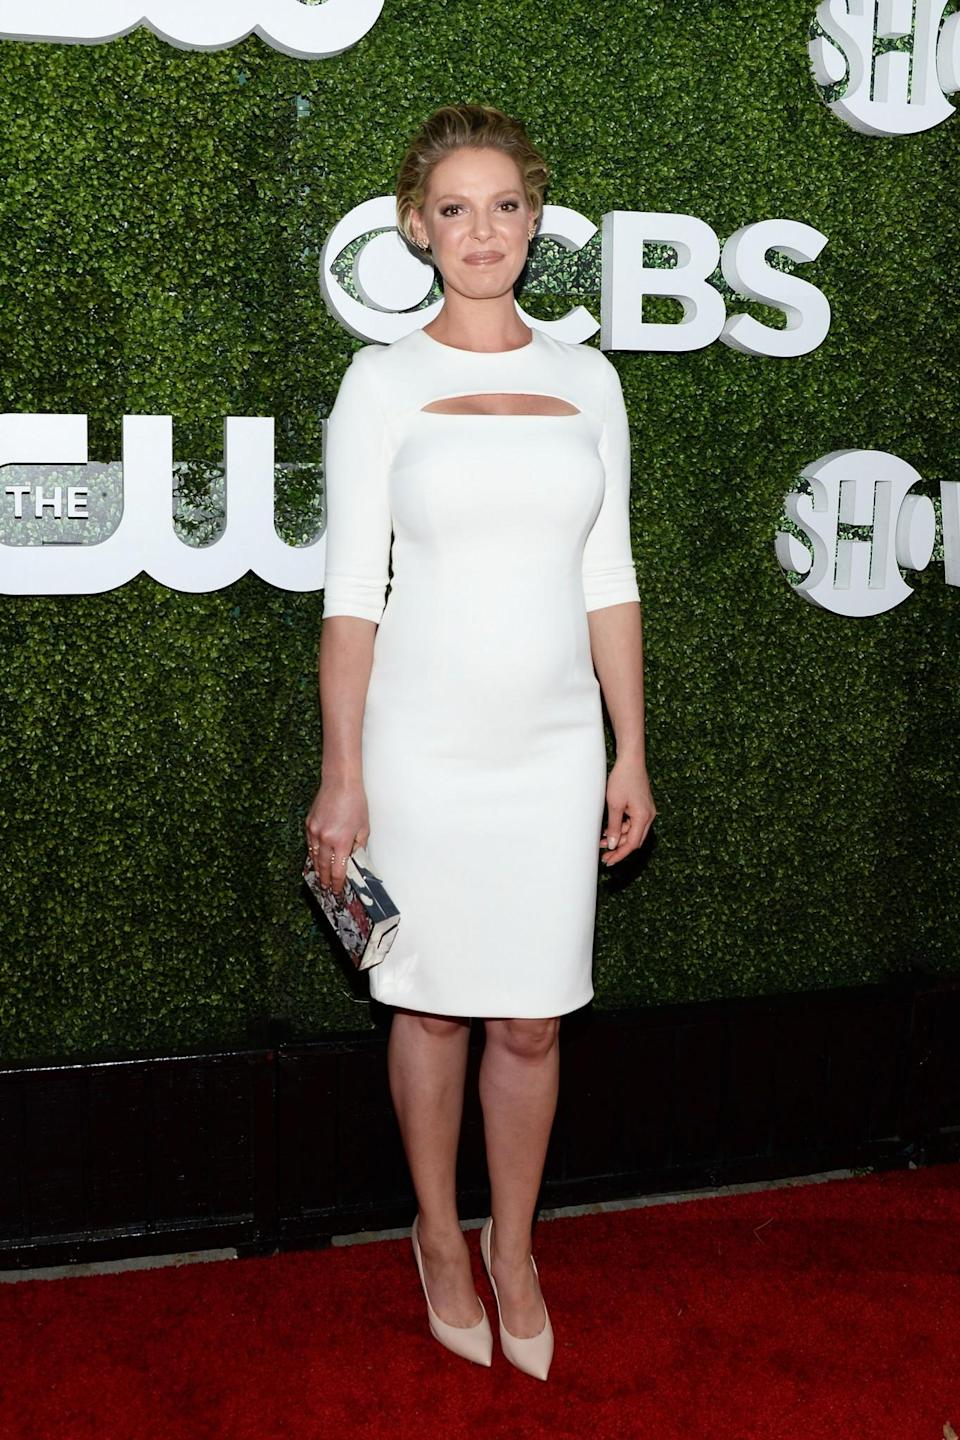 <p>Katherine Heigl proved that a skin-tight and clean-cut dress will work wonders when pregnant. Don't worry: bodycon's not over for you just yet. <i>[Photo: Getty]</i> </p>